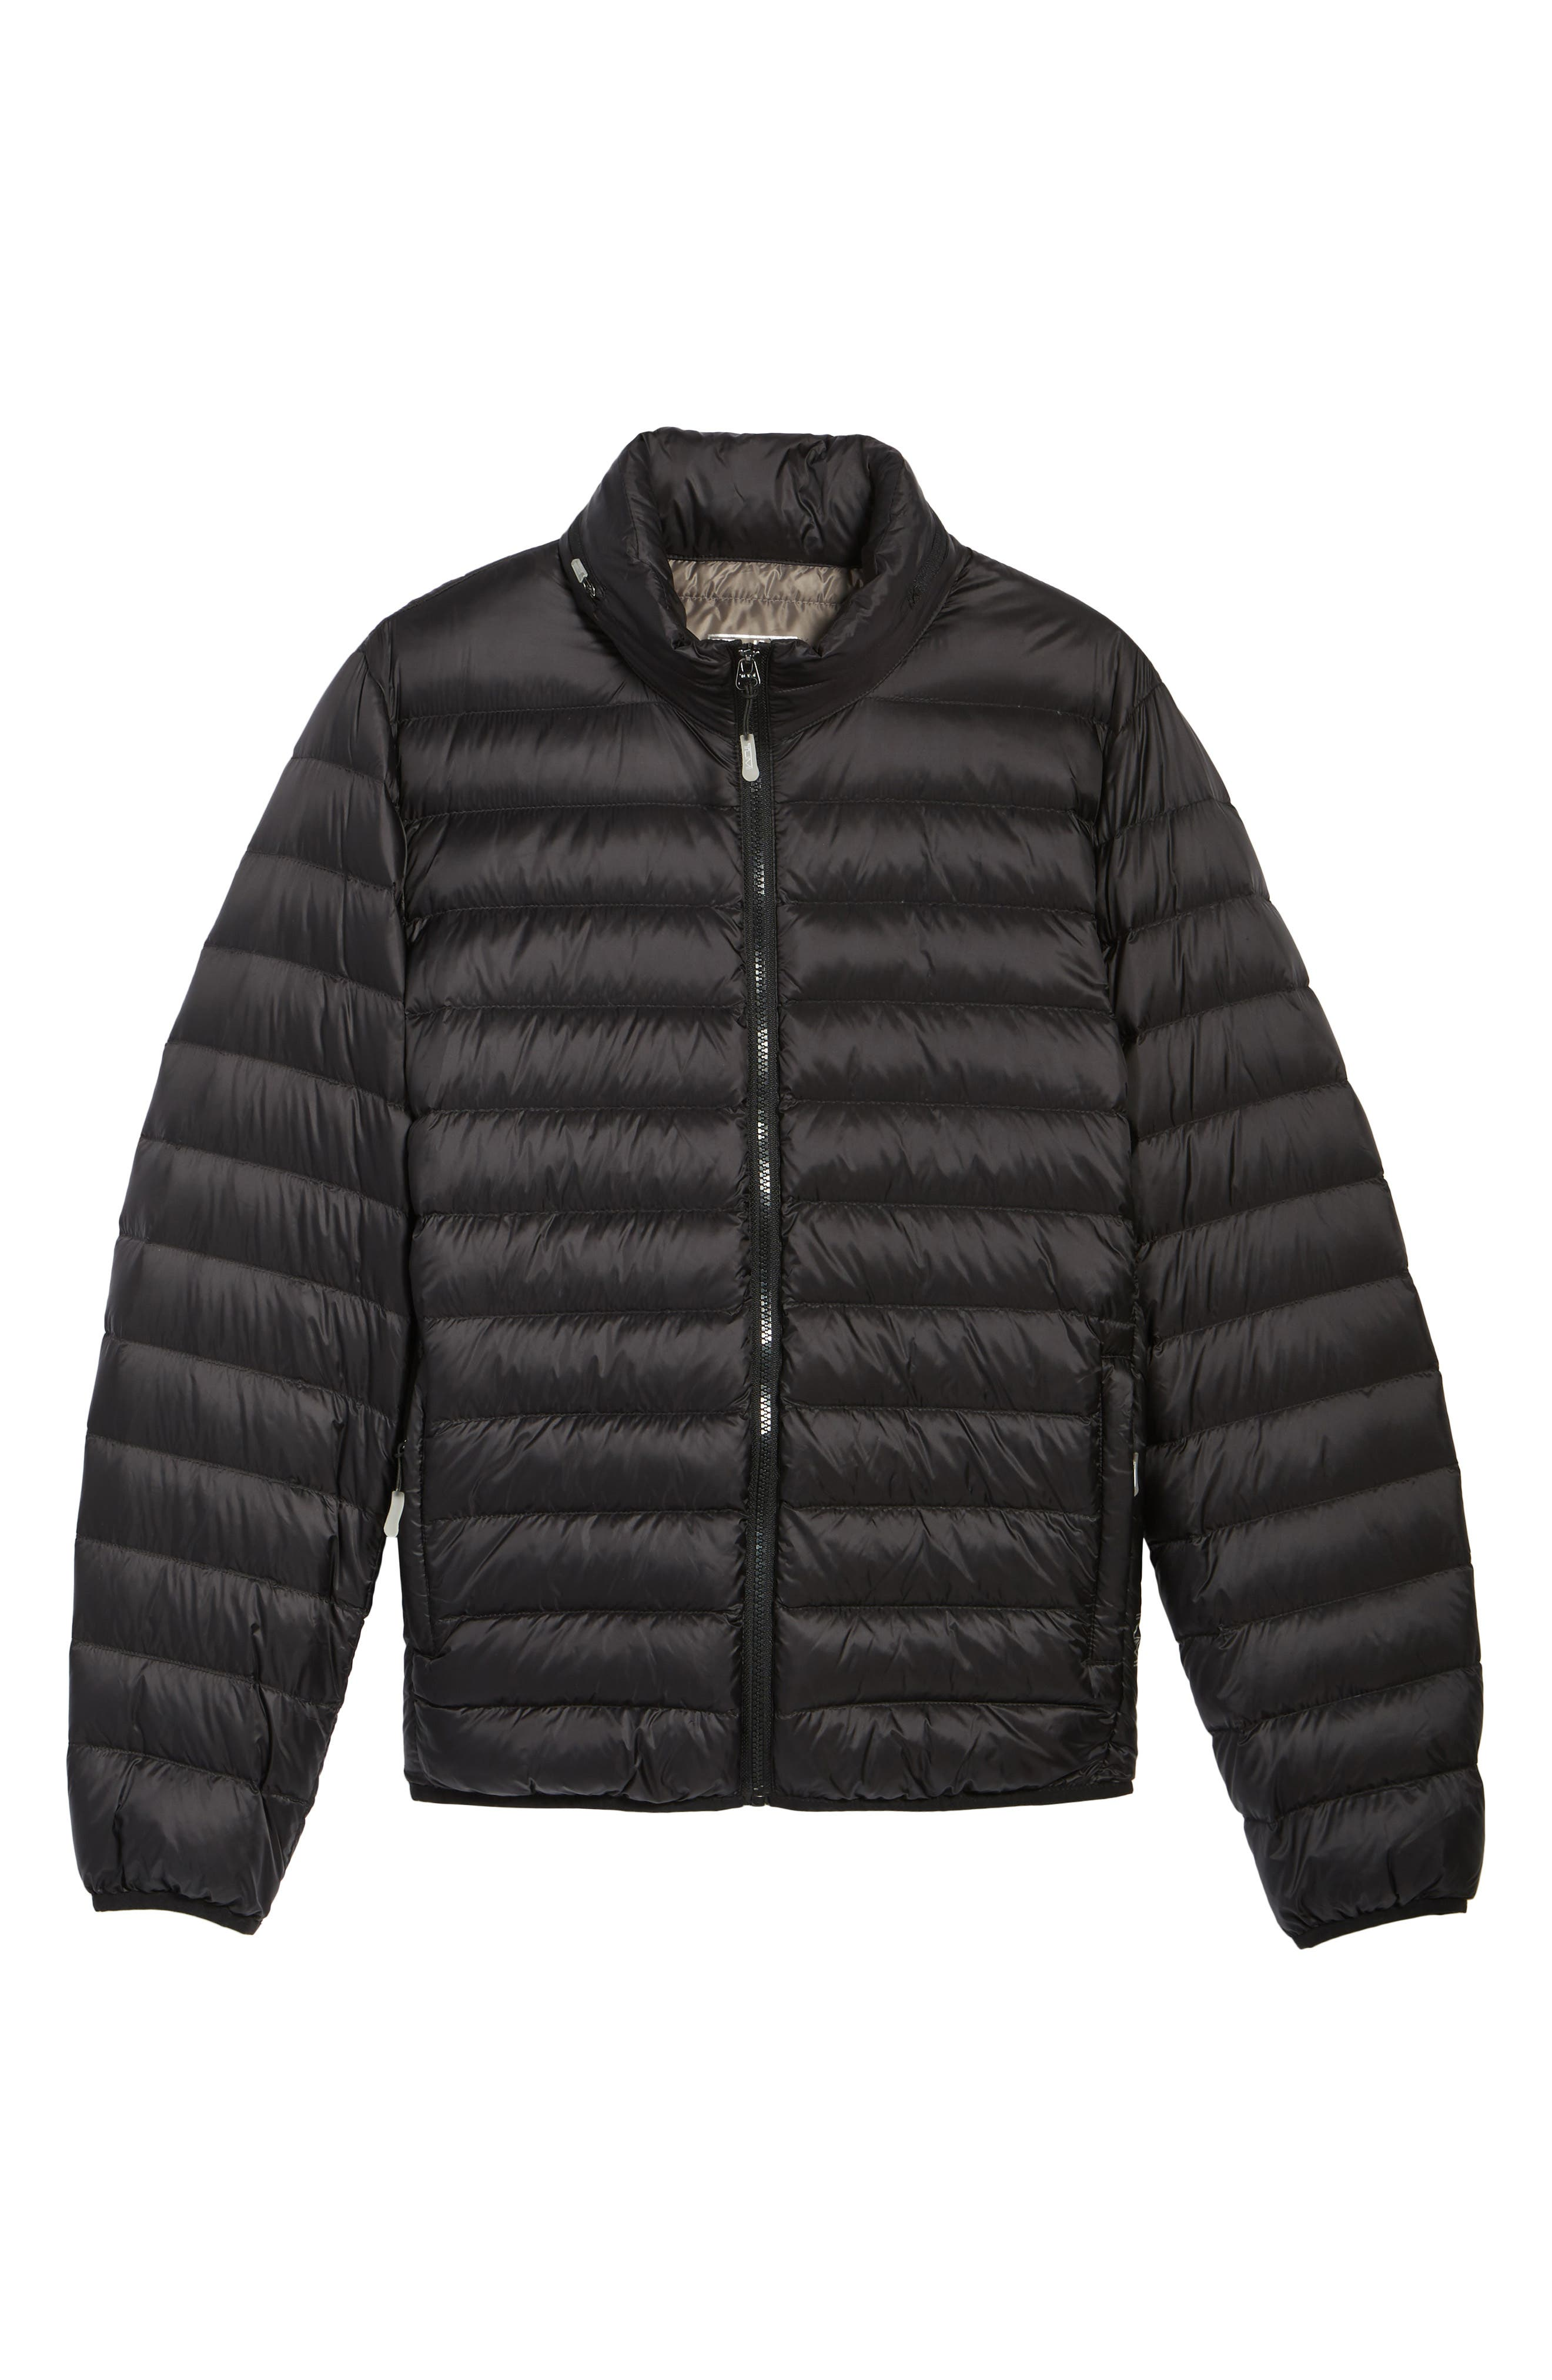 Pax Packable Quilted Jacket,                             Main thumbnail 1, color,                             001